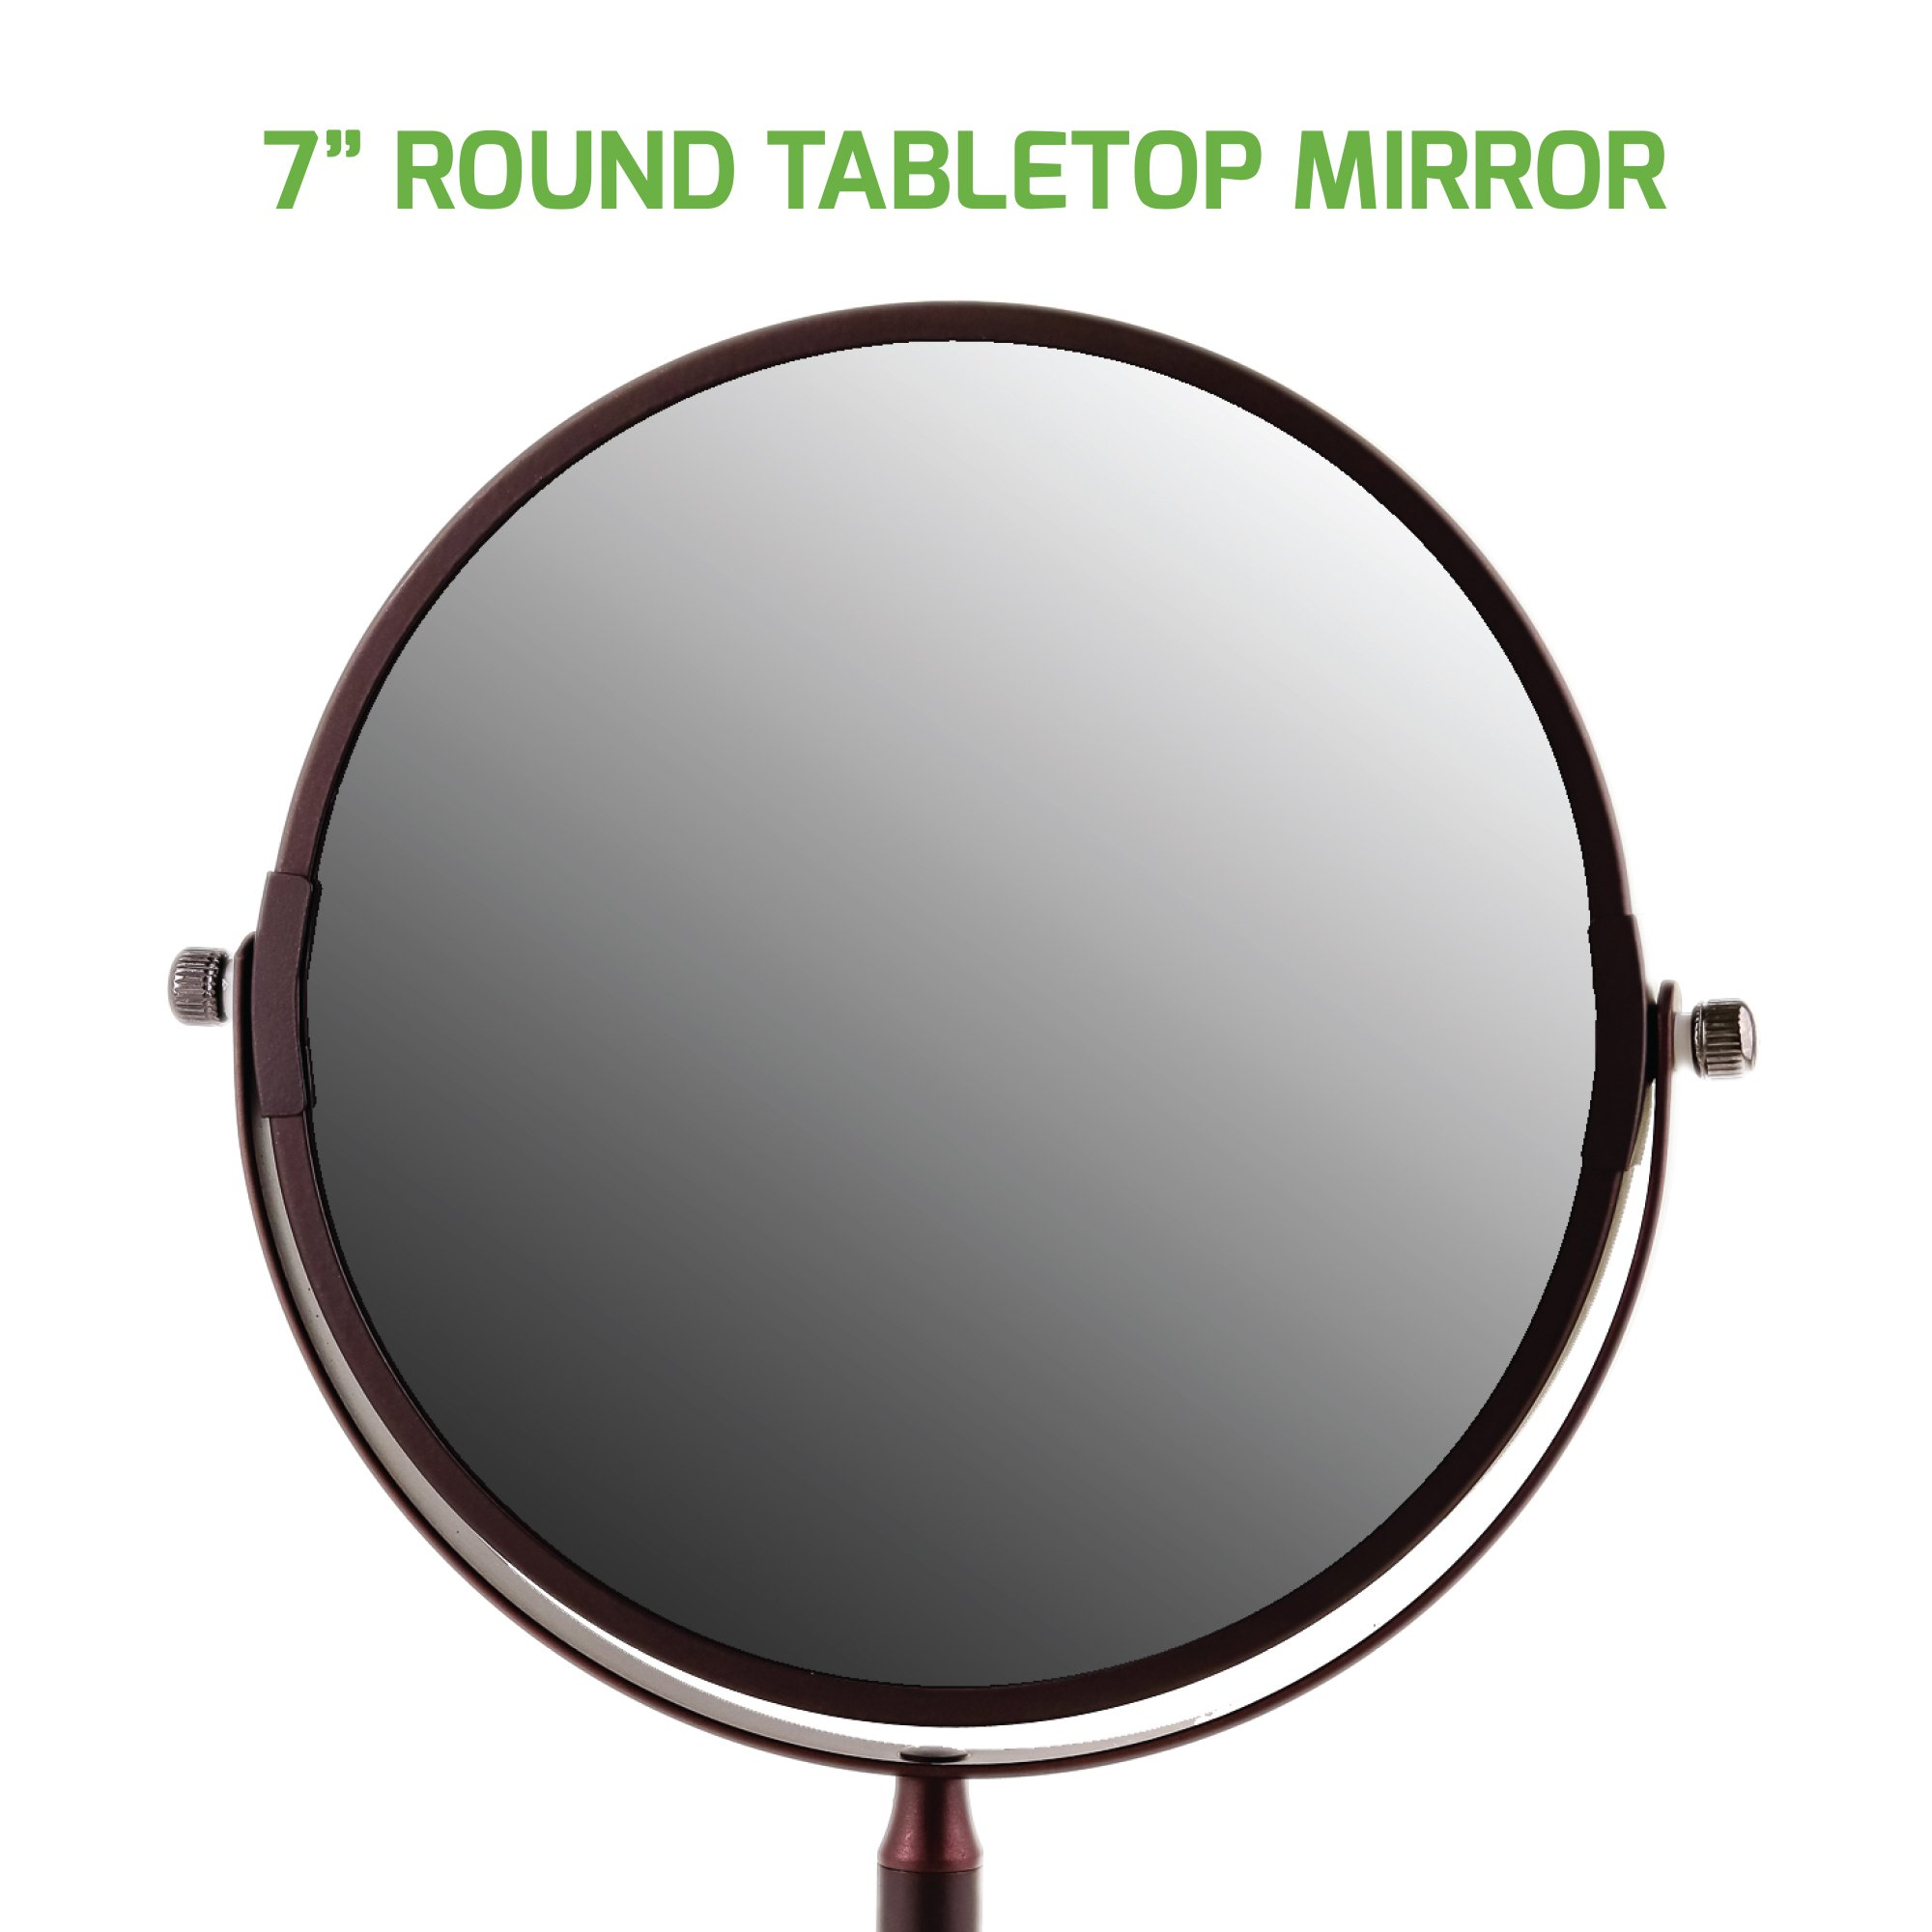 Ovente Round Tabletop Vanity Mirror, 7 Inch, Dual-Sided with 1x/5x magnification, Antique Bronze (MNLDT70ABZ1X5X) by Ovente (Image #6)